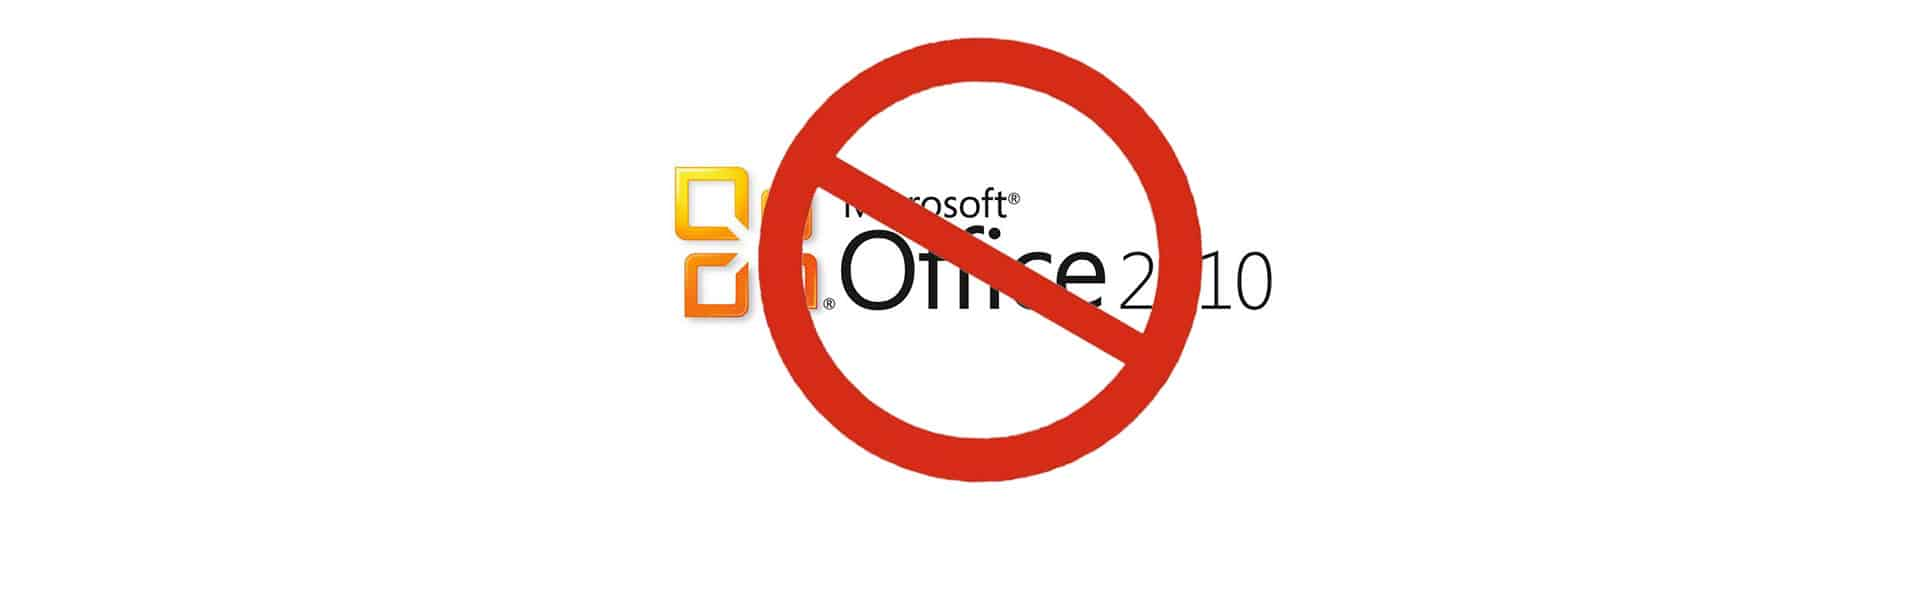 Microsoft Office 2010 Support To End